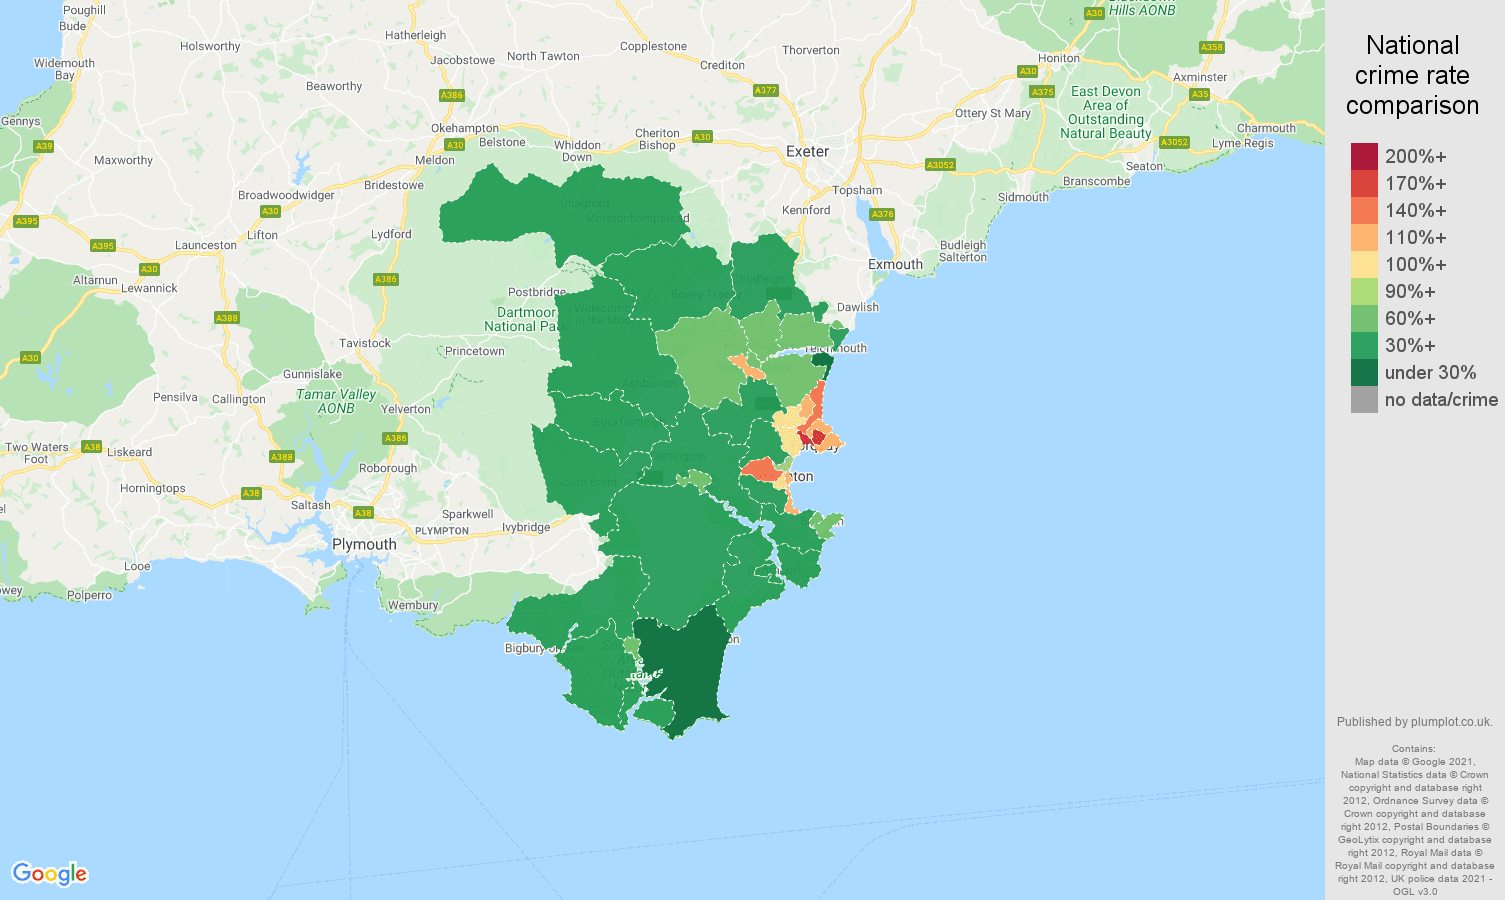 Torquay violent crime rate comparison map